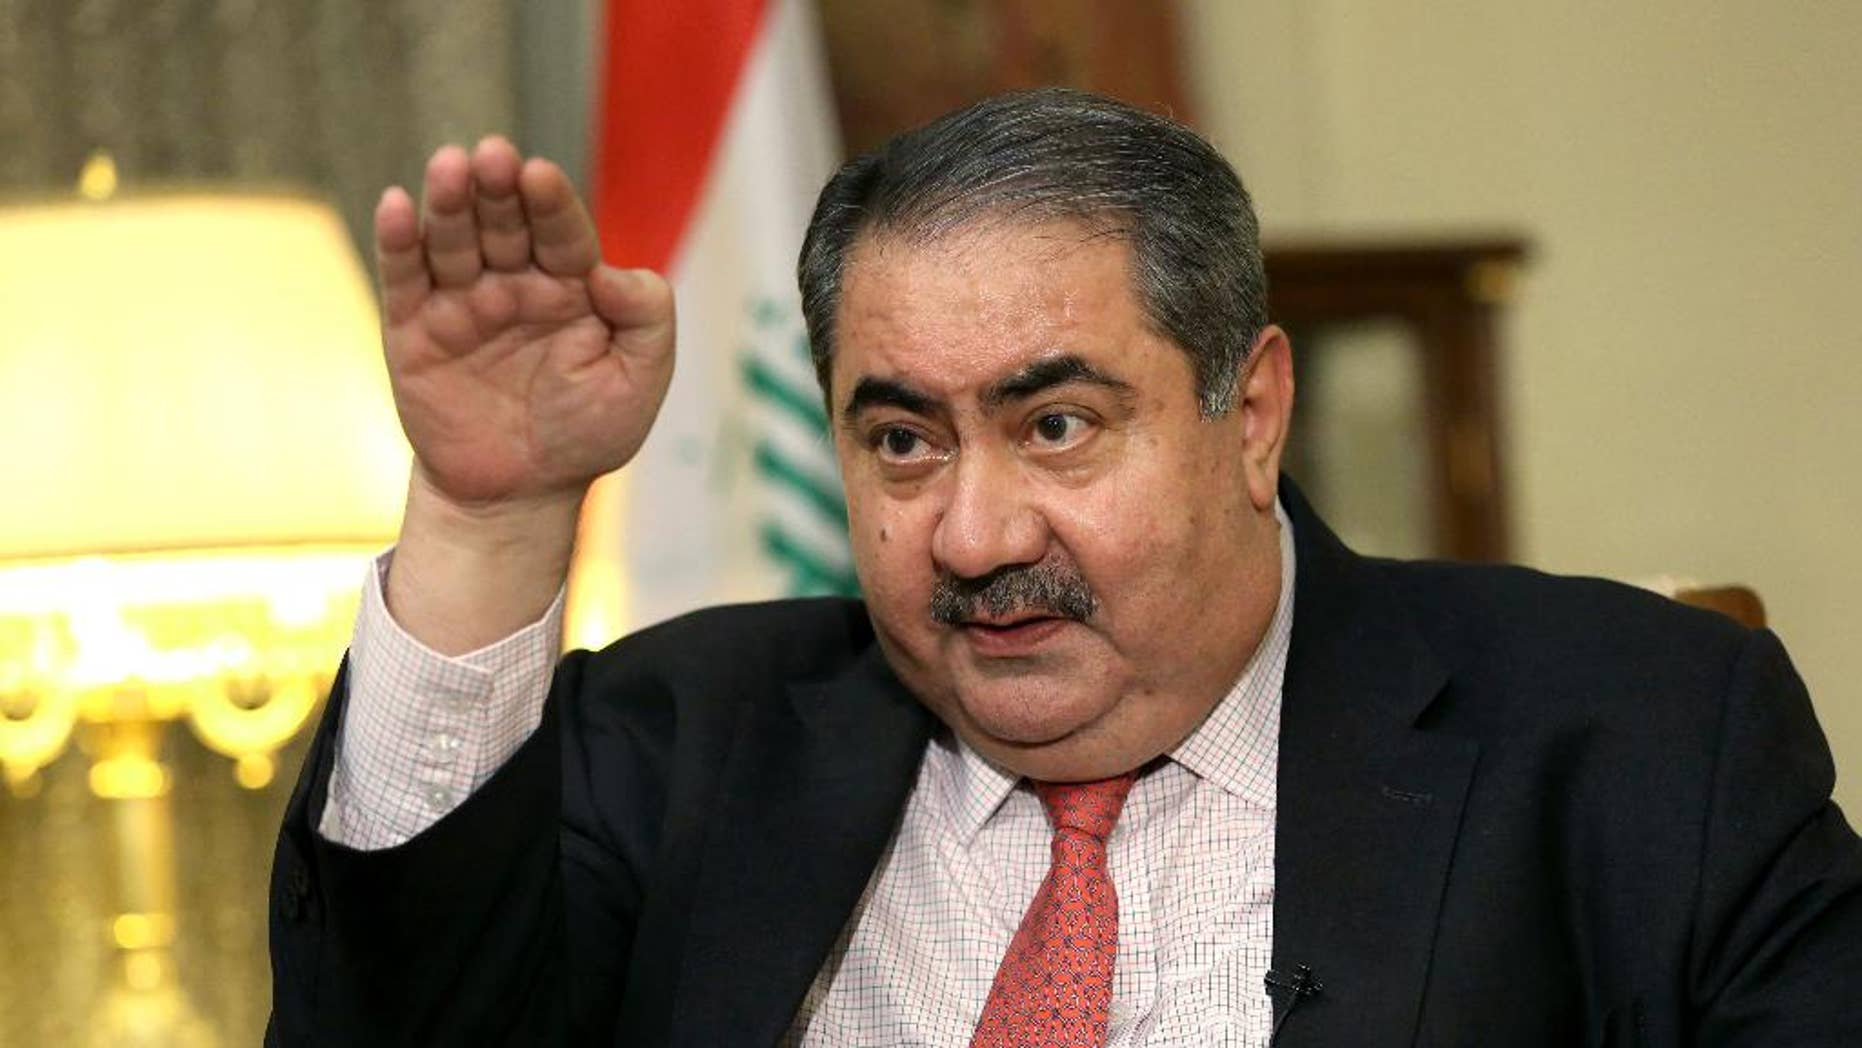 FILE - In this Dec 3, 2014 file photo, Iraq's Finance Minister Hoshyar Zebari speaks during an interview with the Associated Press in Baghdad, Iraq. Iraq's parliament has dismissed the finance minister after a no-confidence vote linked to allegations of corruption and mismanagement. The removal of Zebari, a former foreign minister and prominent Kurdish politician who has denied any wrongdoing, comes as Iraq is grappling with an economic crisis driven by low oil prices and the costs of battling the Islamic State group. (AP Photo/Hadi Mizban, File)